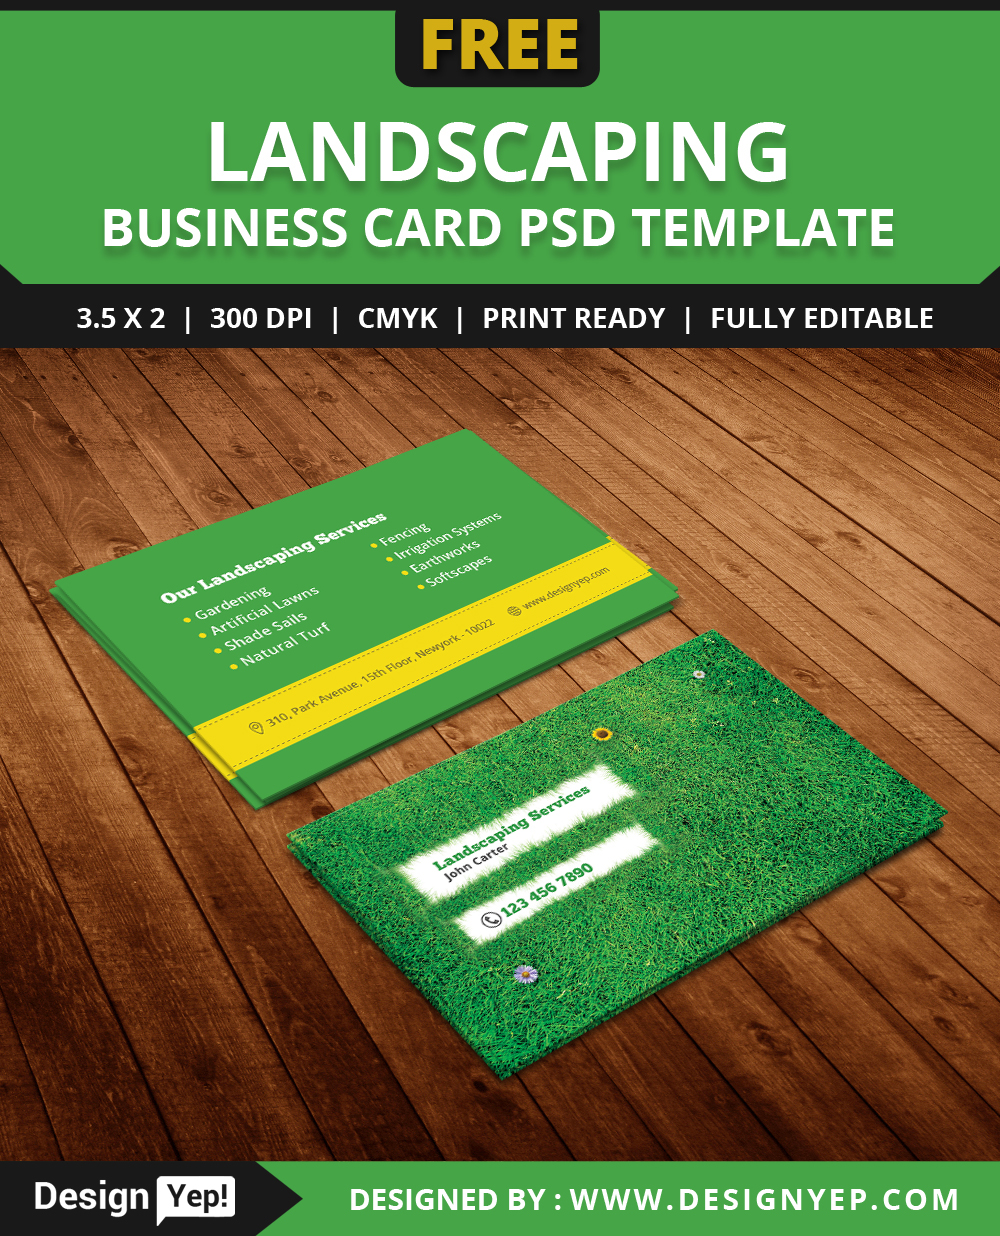 Free landscaping business card template psd on behance accmission Images